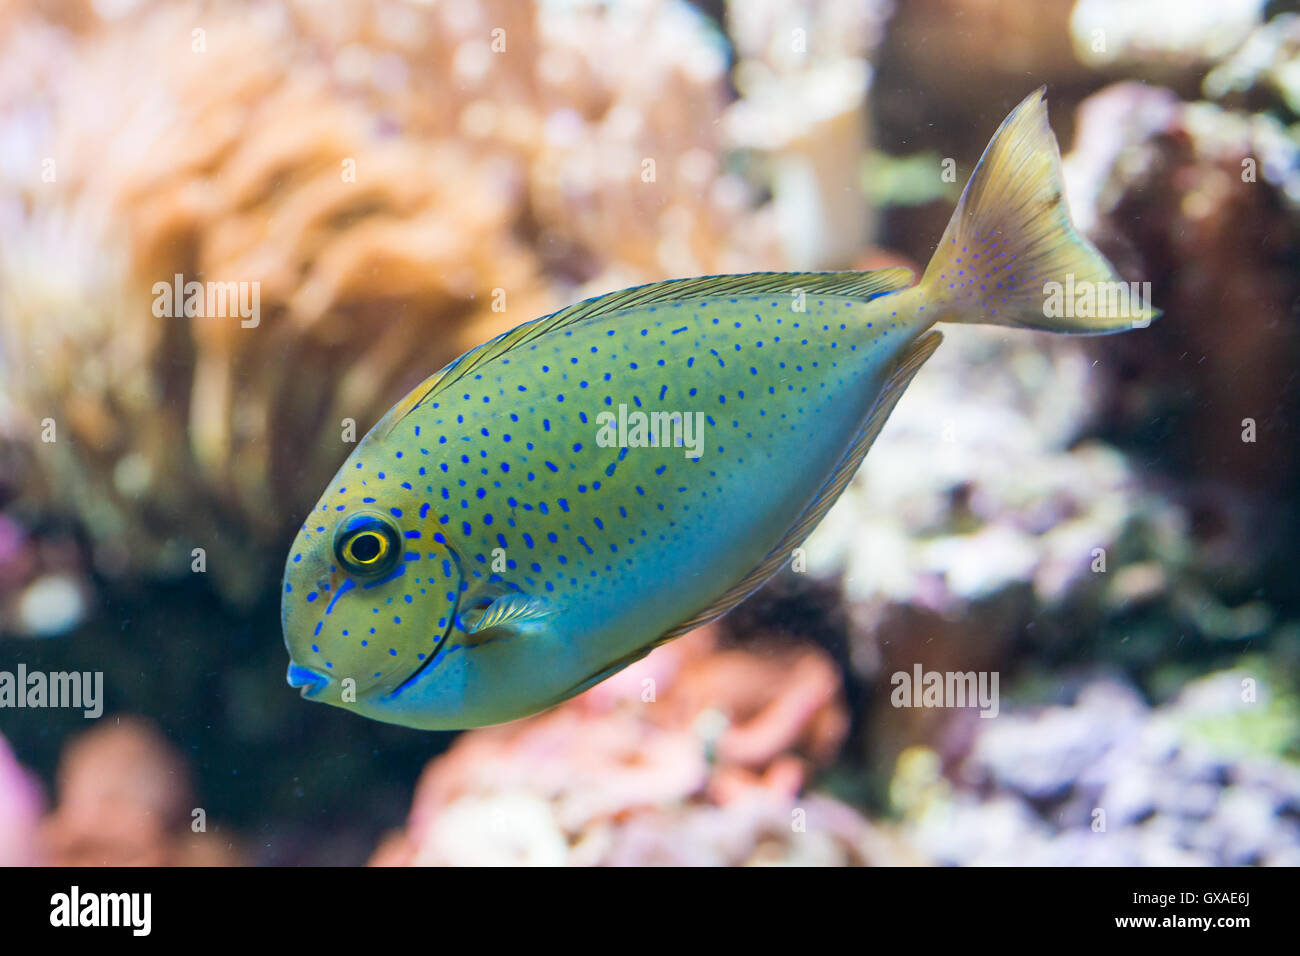 naso vlamingii - bignose unicornfish - saltwater fish - Stock Image